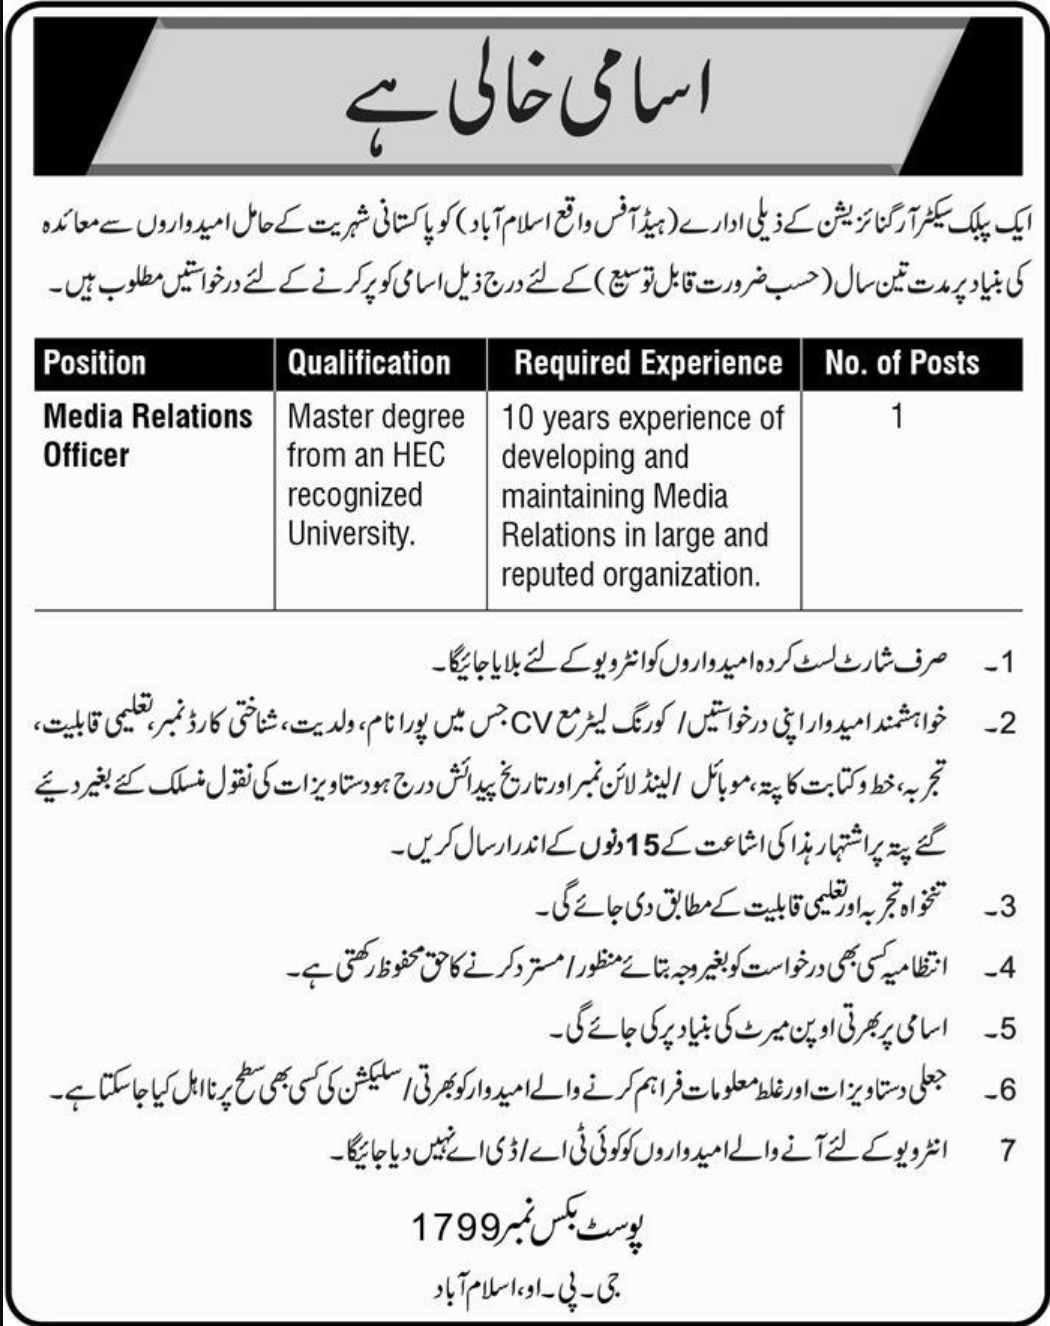 Public Sector Organization Jobs 2019 P.O.Box 1799 Islamabad